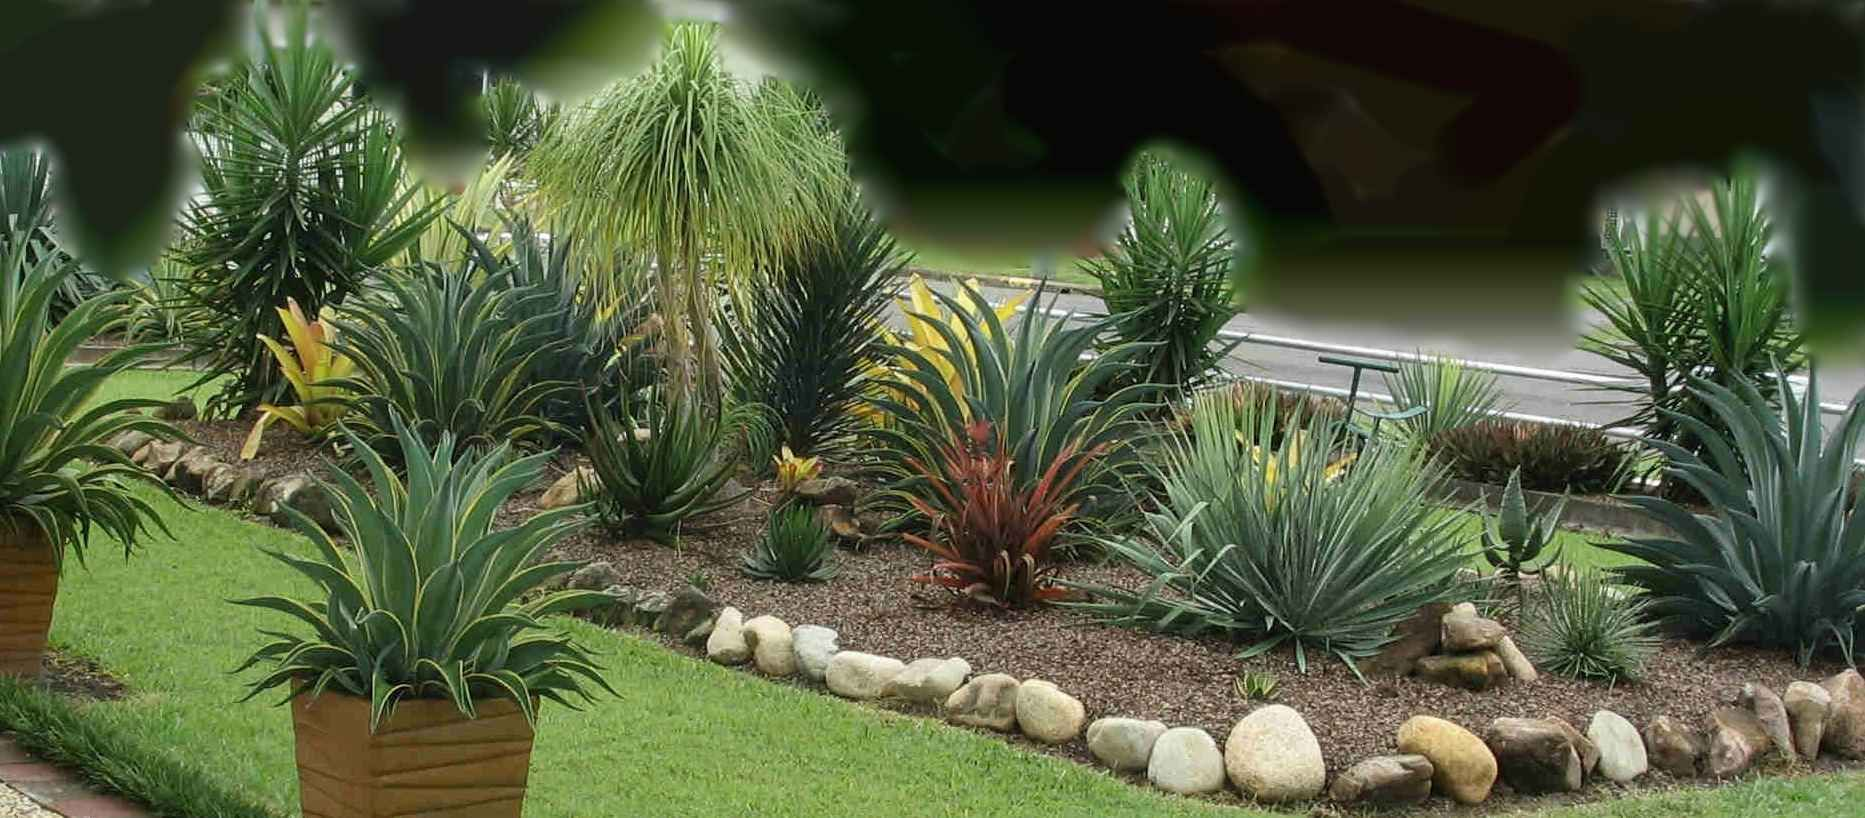 Yucca agave plants landscaping garden design ideas for Plant landscape design